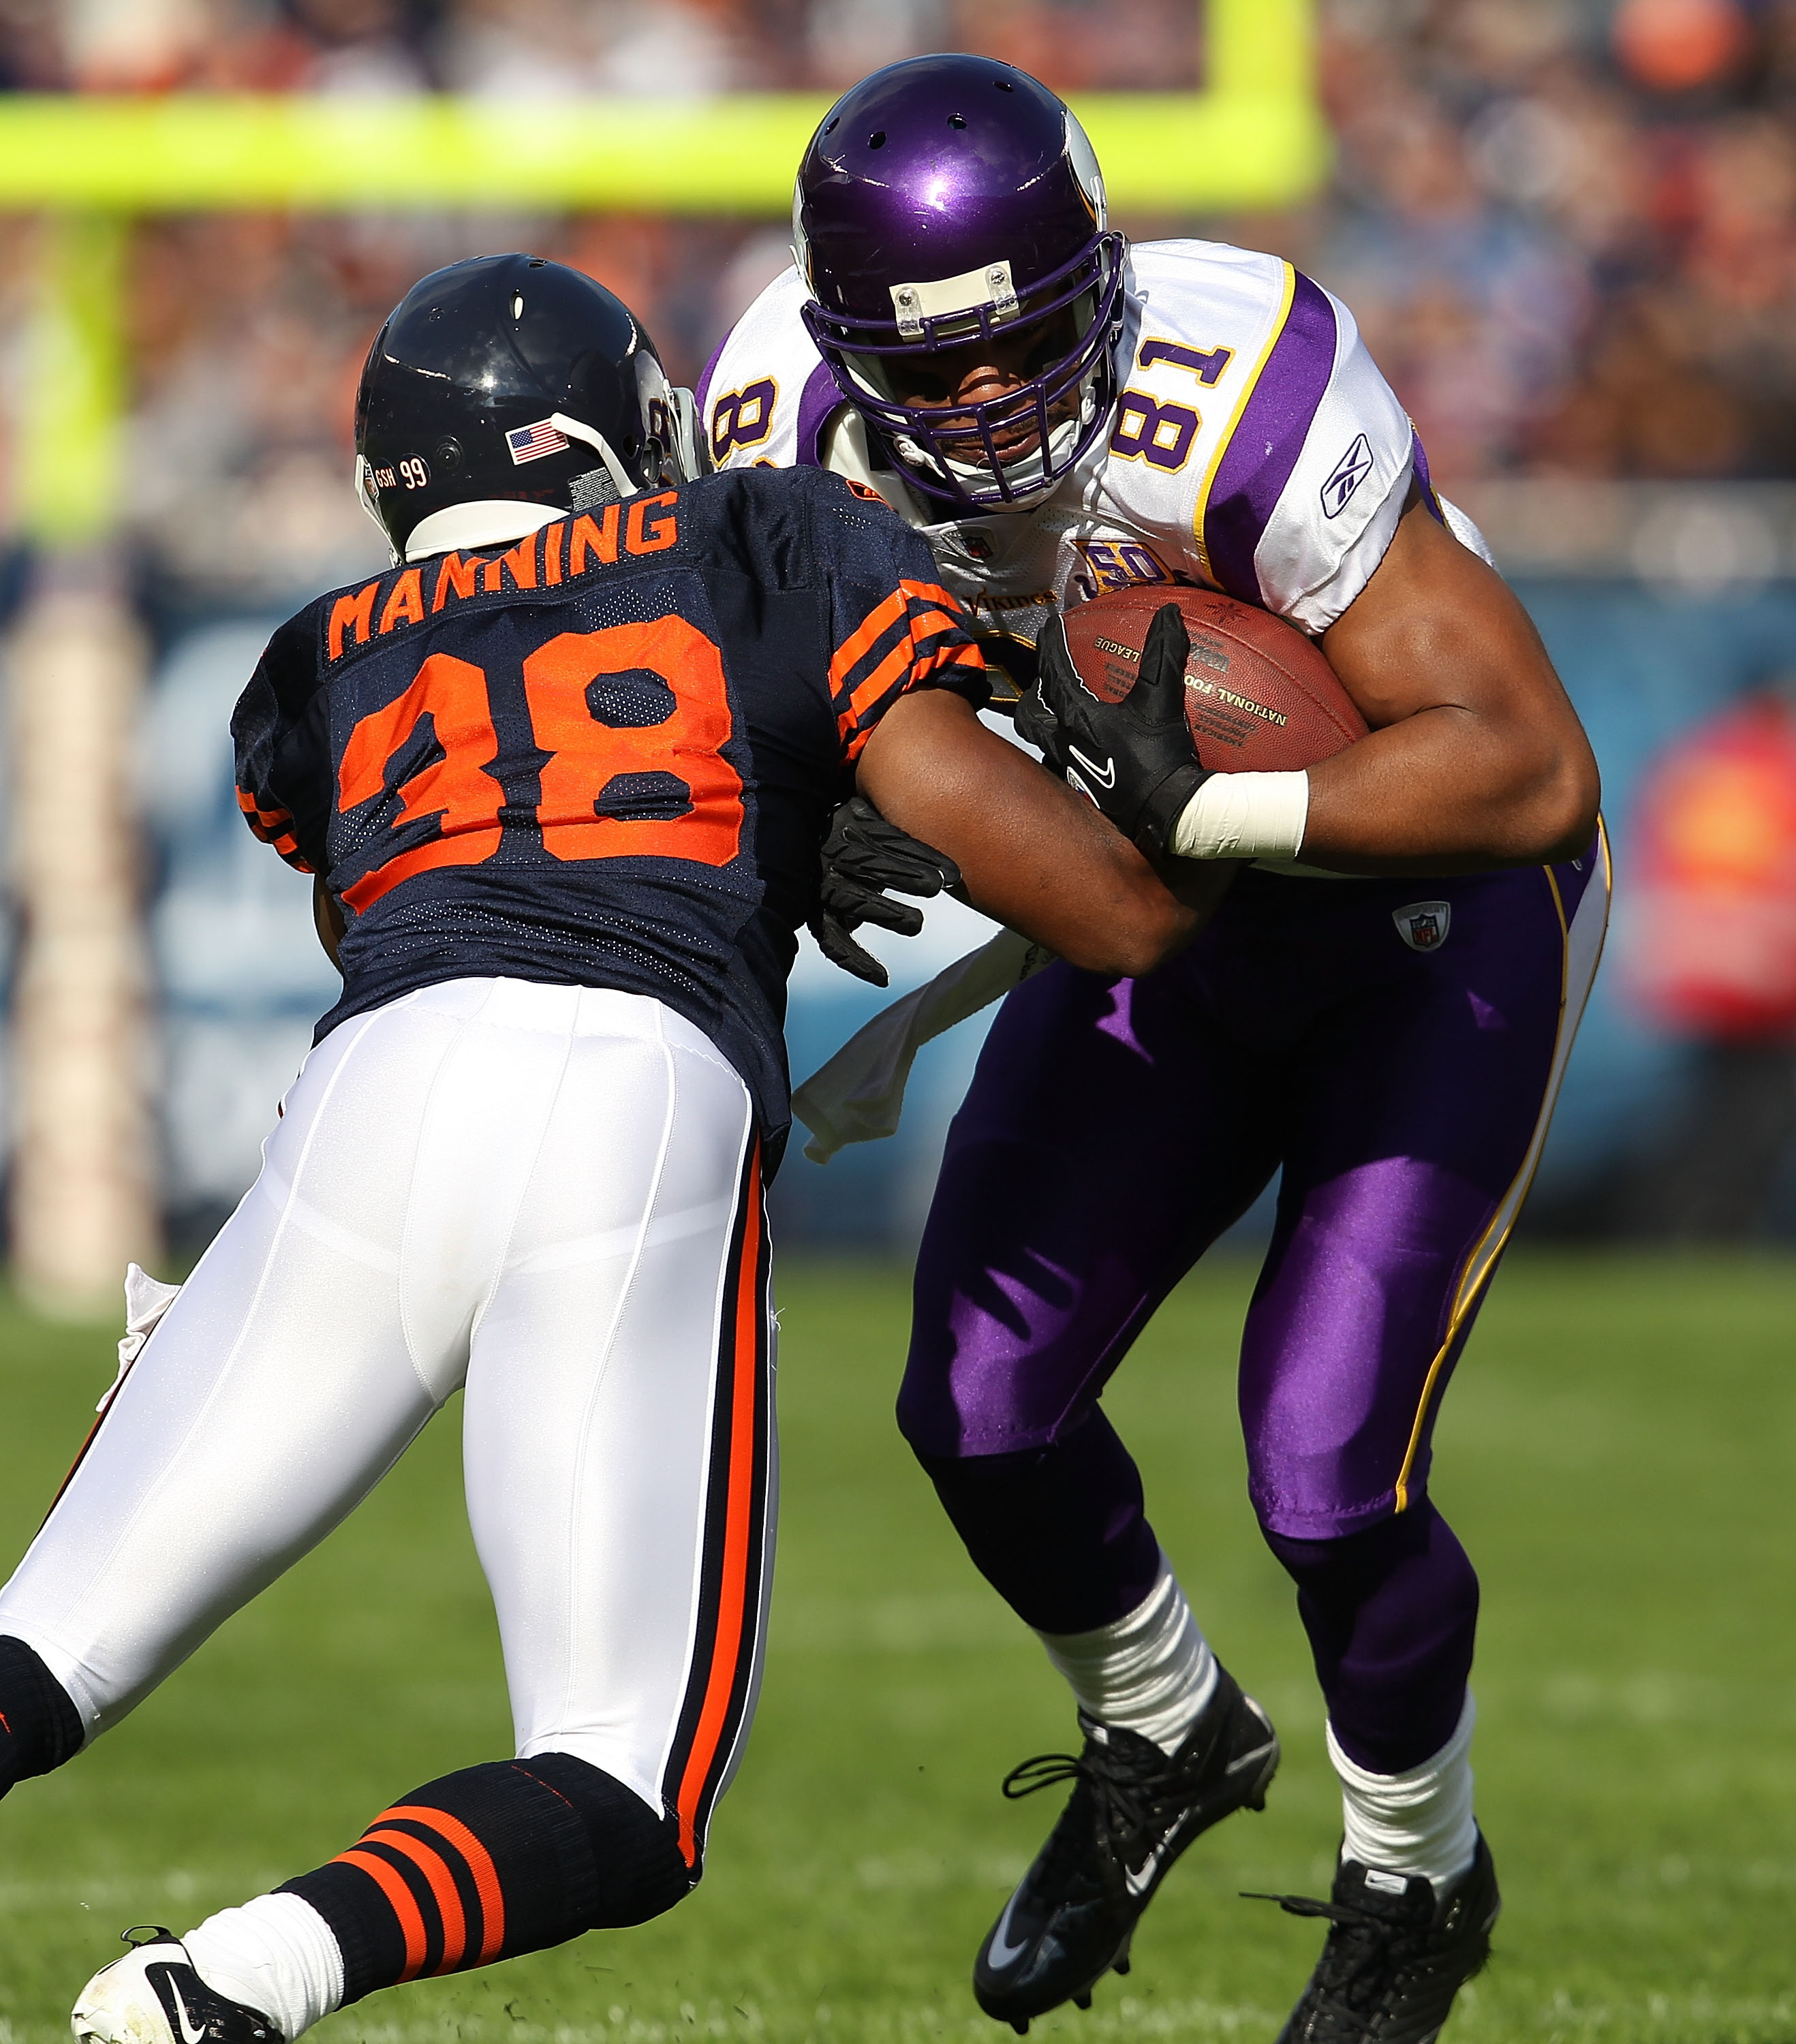 CHICAGO - NOVEMBER 14: Danieal Manning #38 of the Chicago Bears hits Visanthe Shiancoe #81 the Minnesota Vikings at Soldier Field on November 14, 2010 in Chicago, Illinois. The Bears defeated the Vikings 27-13. (Photo by Jonathan Daniel/Getty Images)